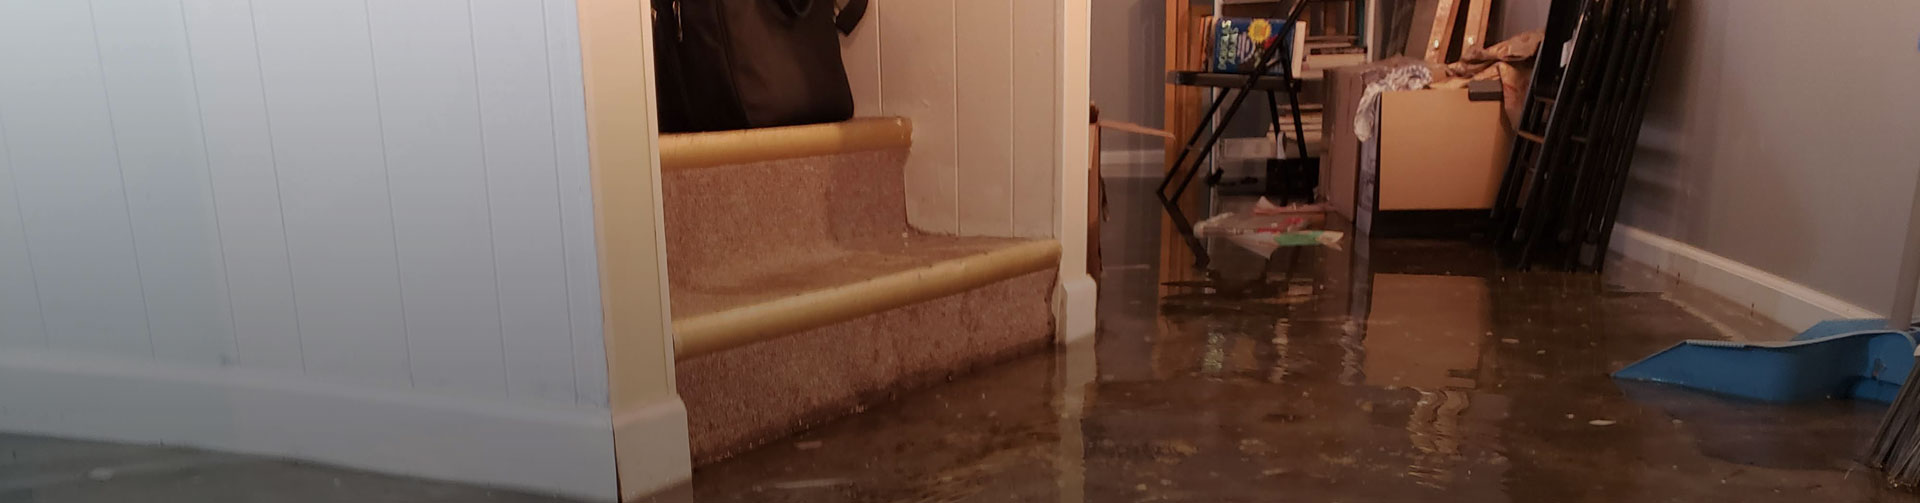 Water Damage Restoration Professionals - Chicagoland Water Medics